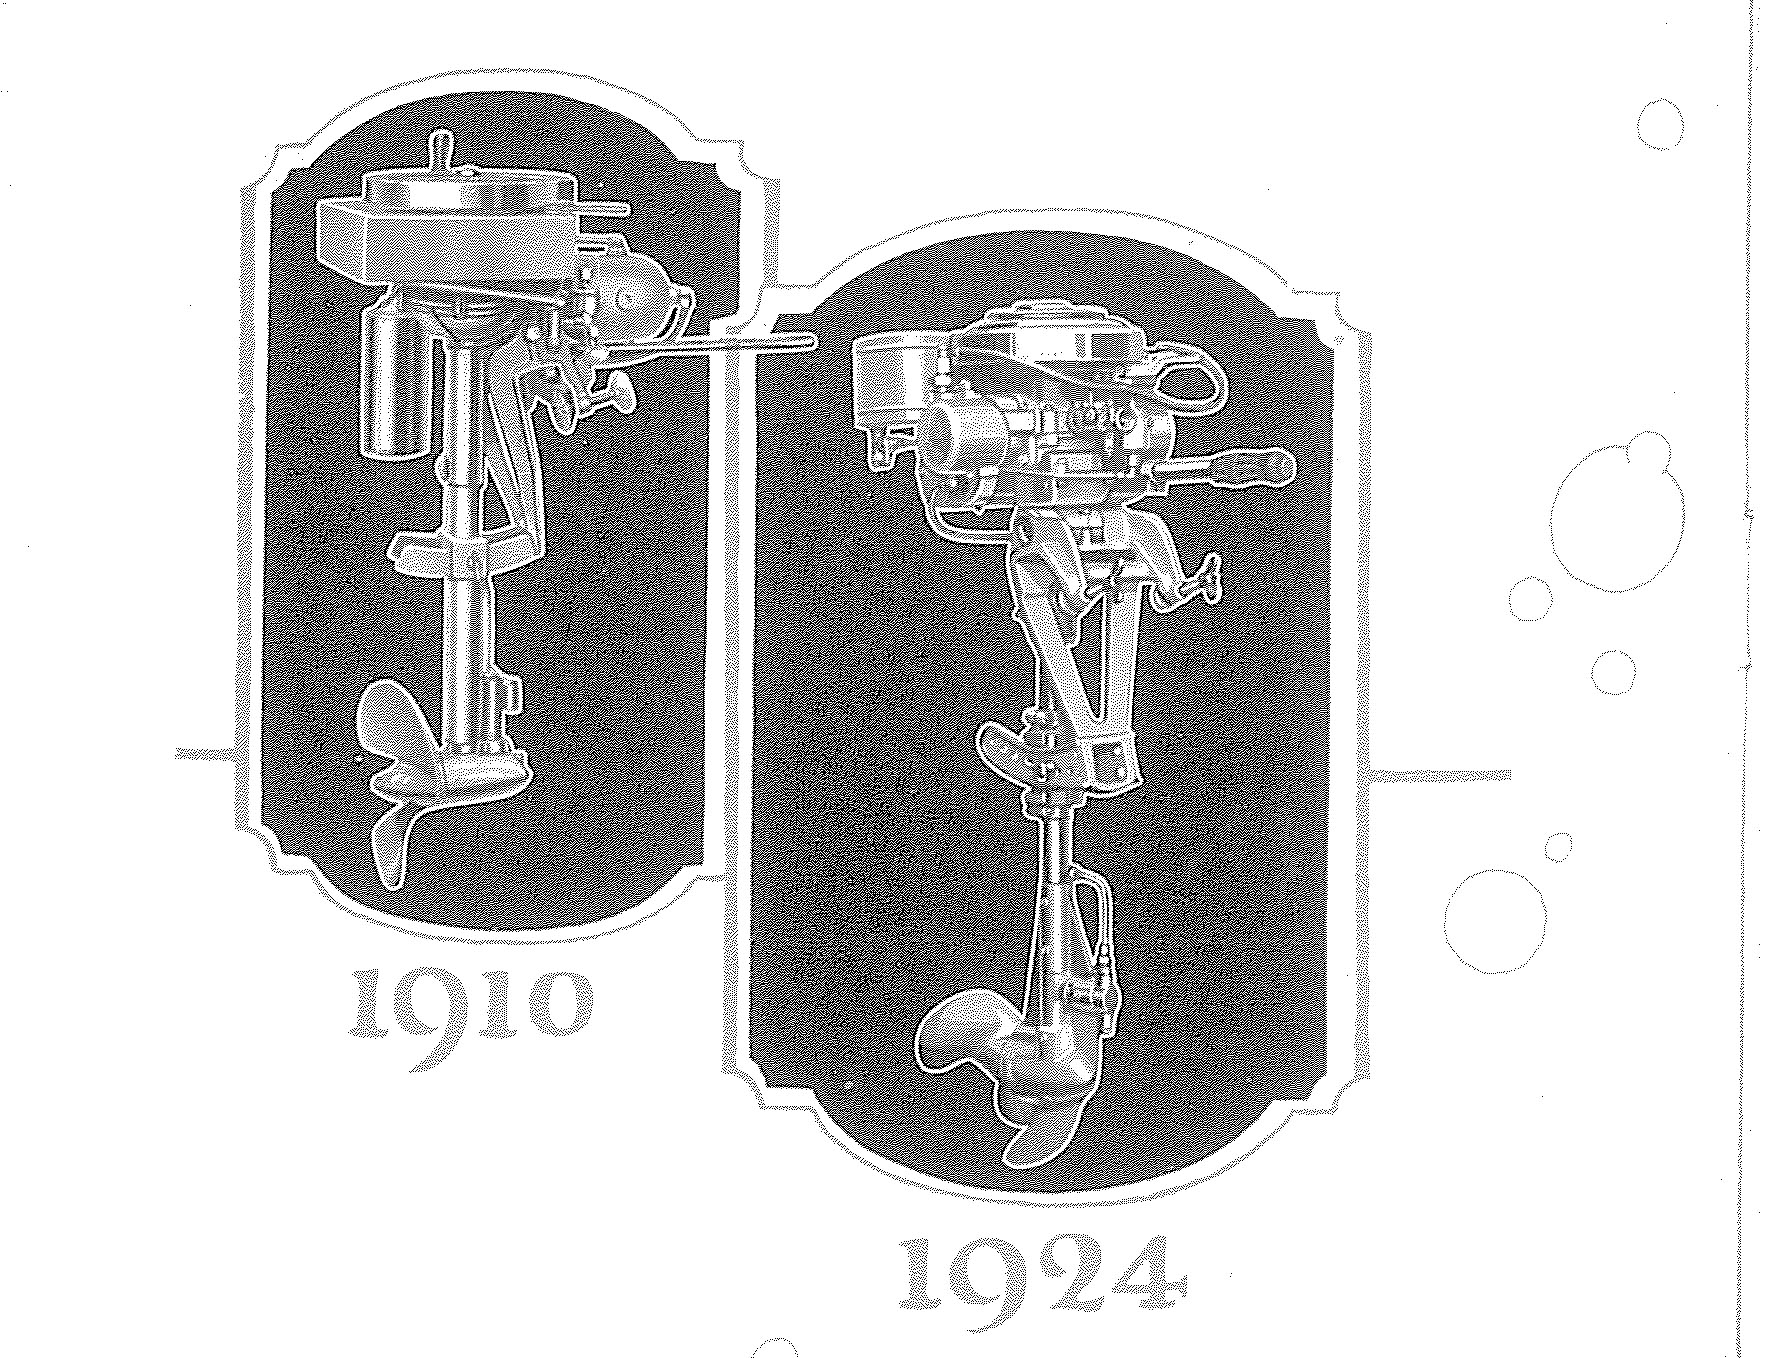 Evinrude's 1910 and 1924 motors.